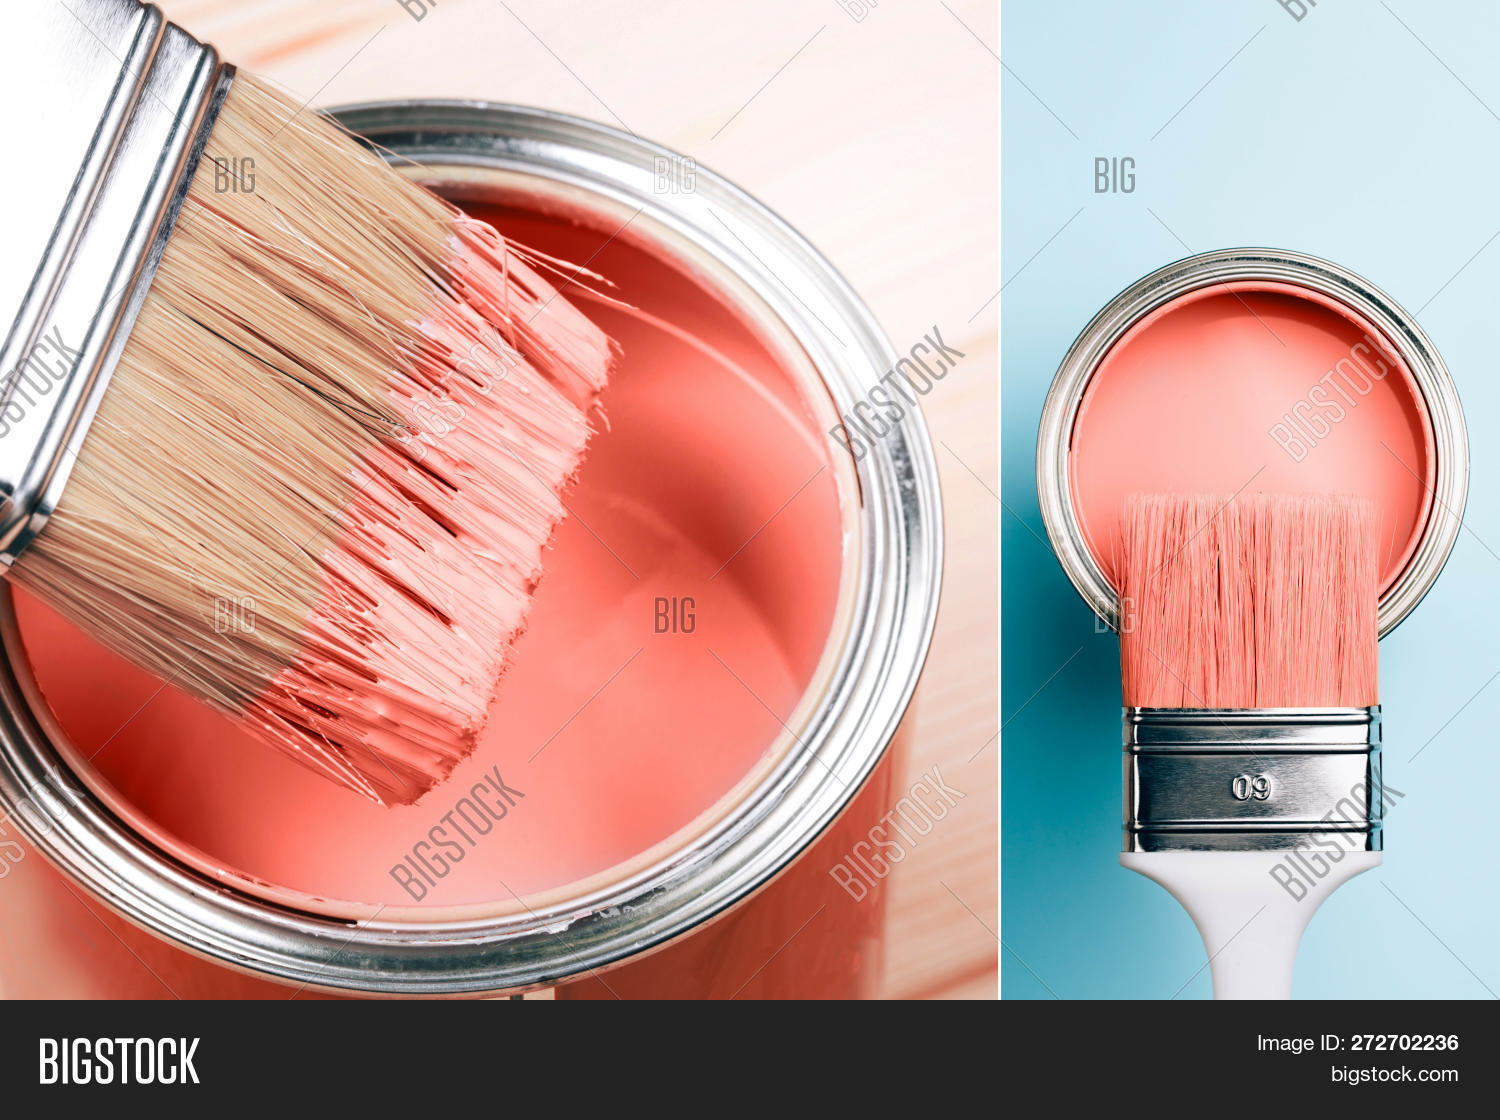 16-1546,2019,Background,Color,Optimism,authentic,beautiful,blue,bright,brush,can,collage,colour,concept,coral,coy2019,creative,daily,design,fashion,floor,home,hype,inspiration,interior,life,lifestyle,live,livingcoral,macro,main,many,media,mood,orange,paint,paintbrush,renovation,repair,set,social,style,table,tone,trend,varnish,vertical,vibrant,year